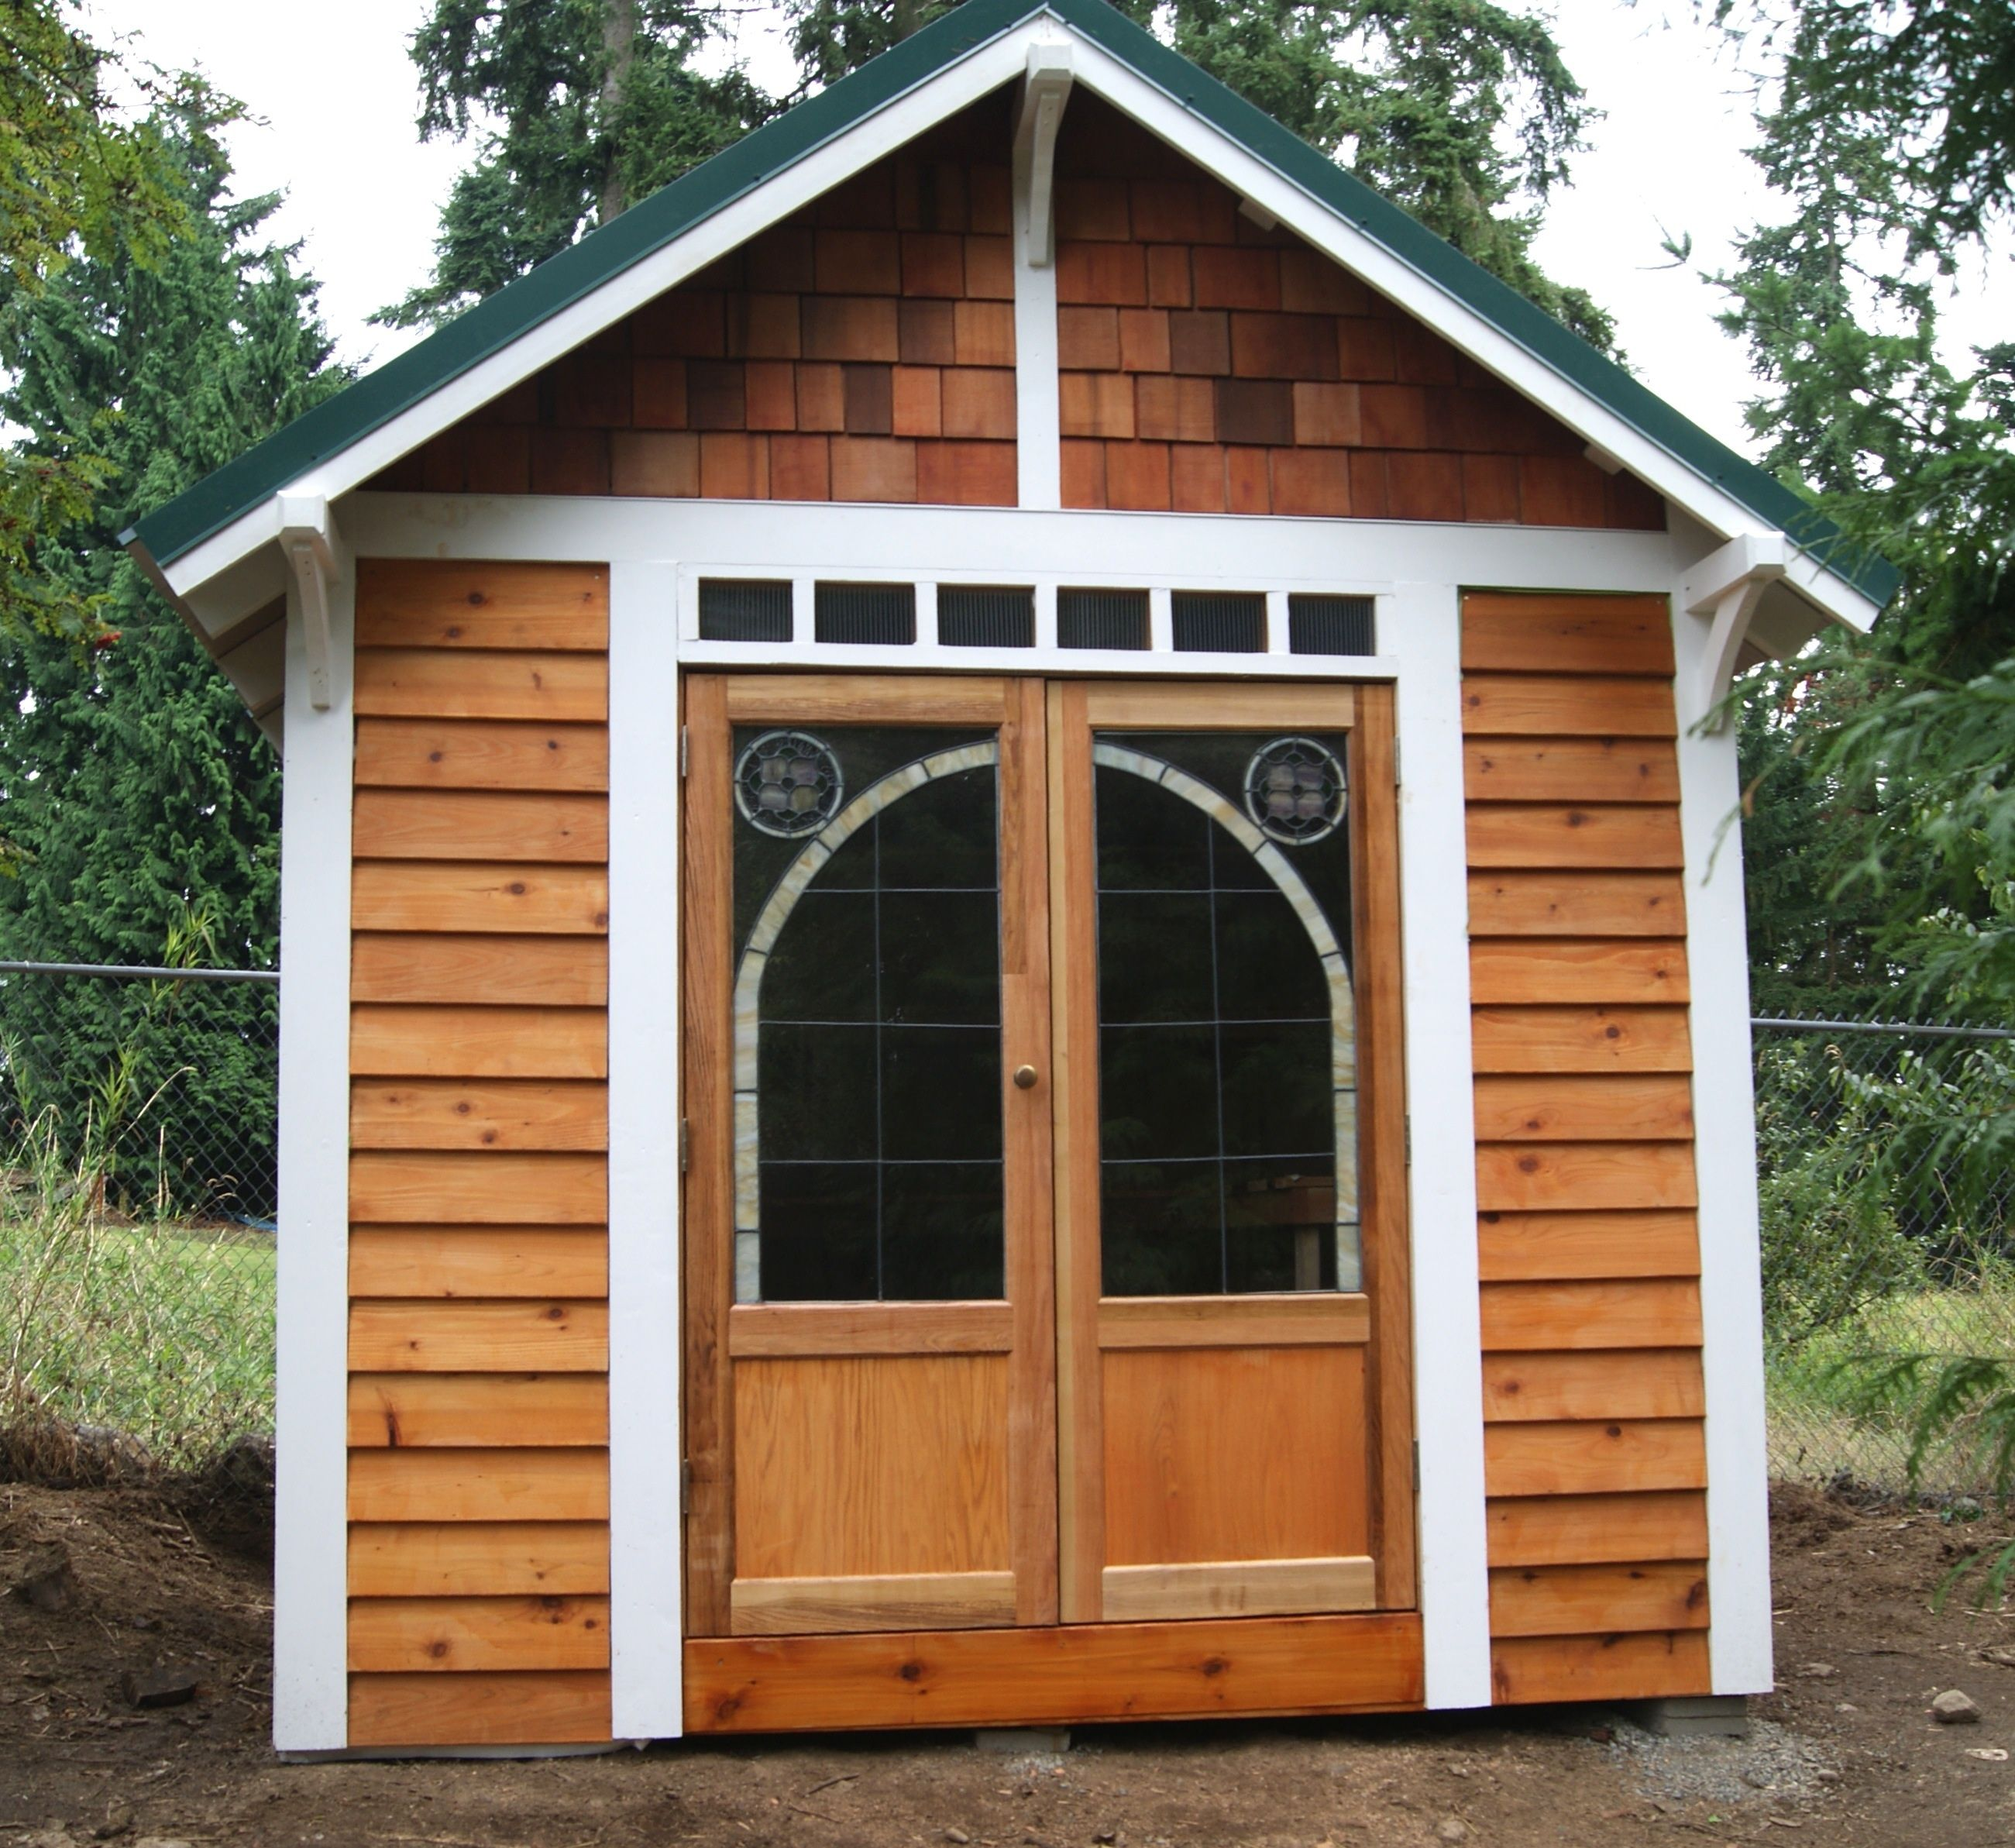 colors ct sale pin outdoor storage potting shed in pinterest for sheds tiny